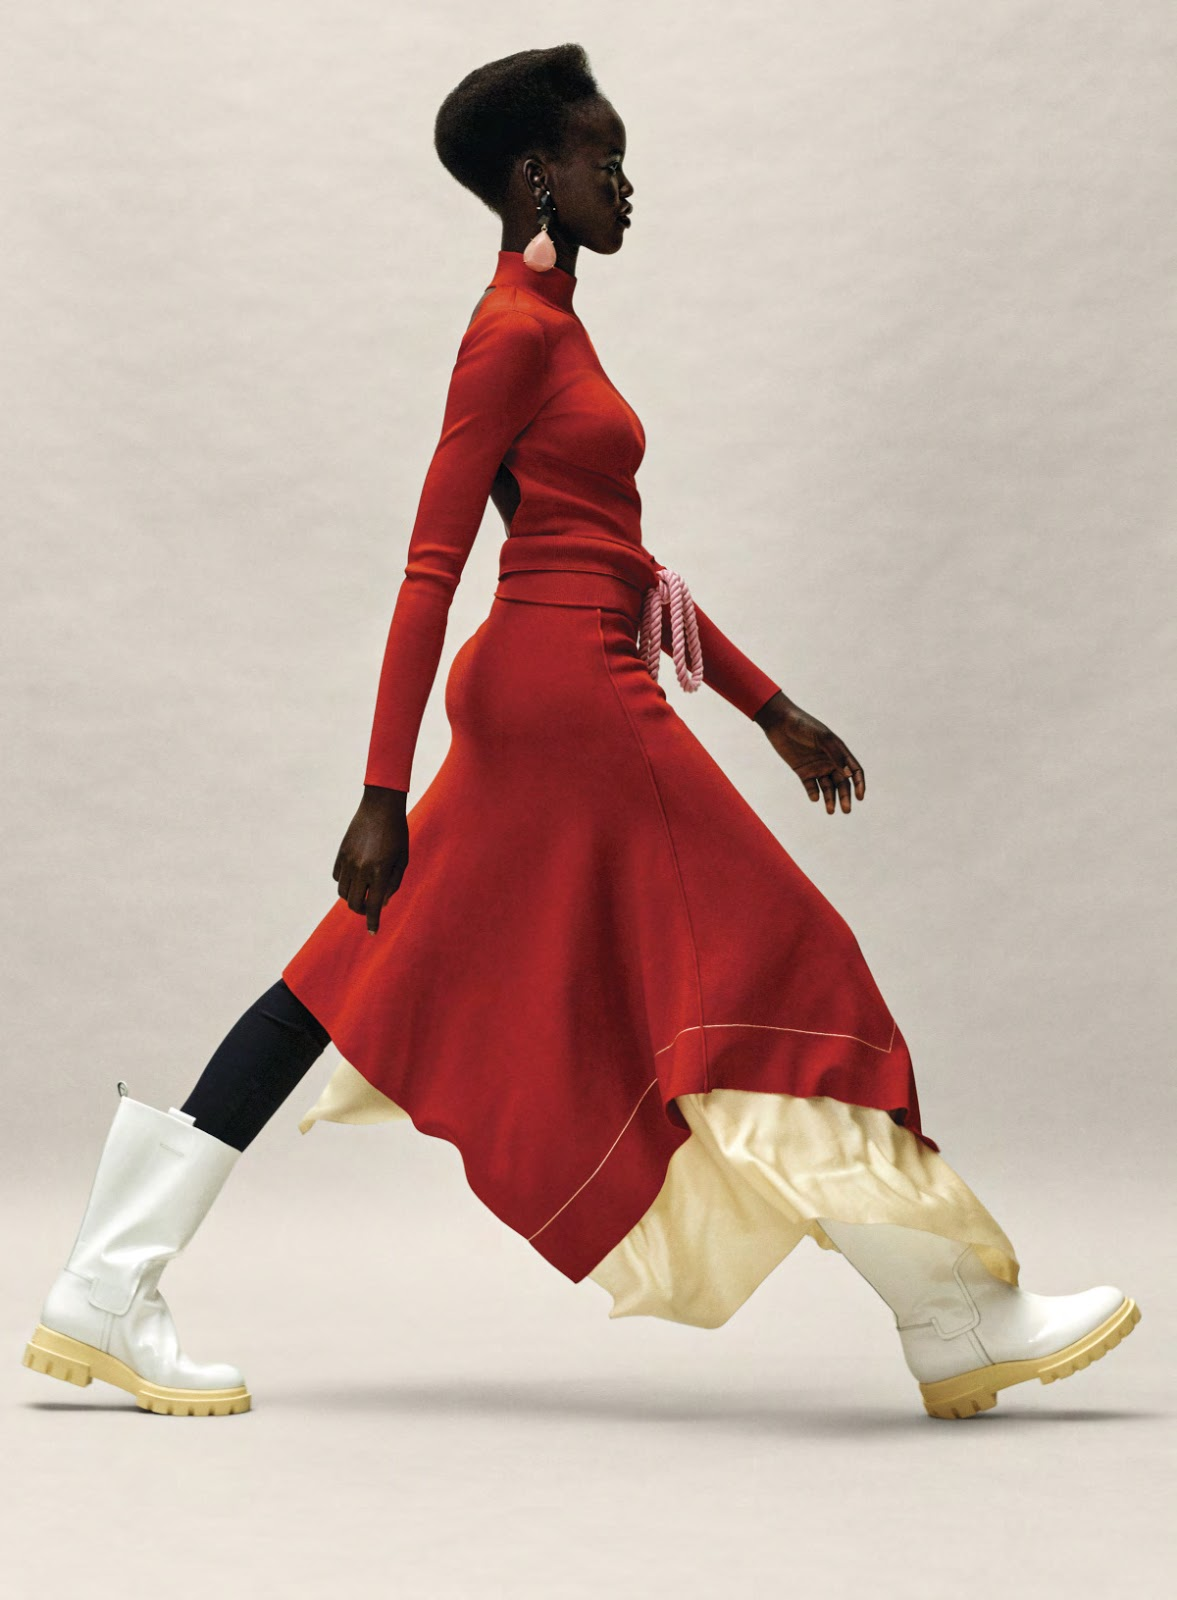 Adut Akech by Josh Olins for Vogue US January 2019 (6).jpg